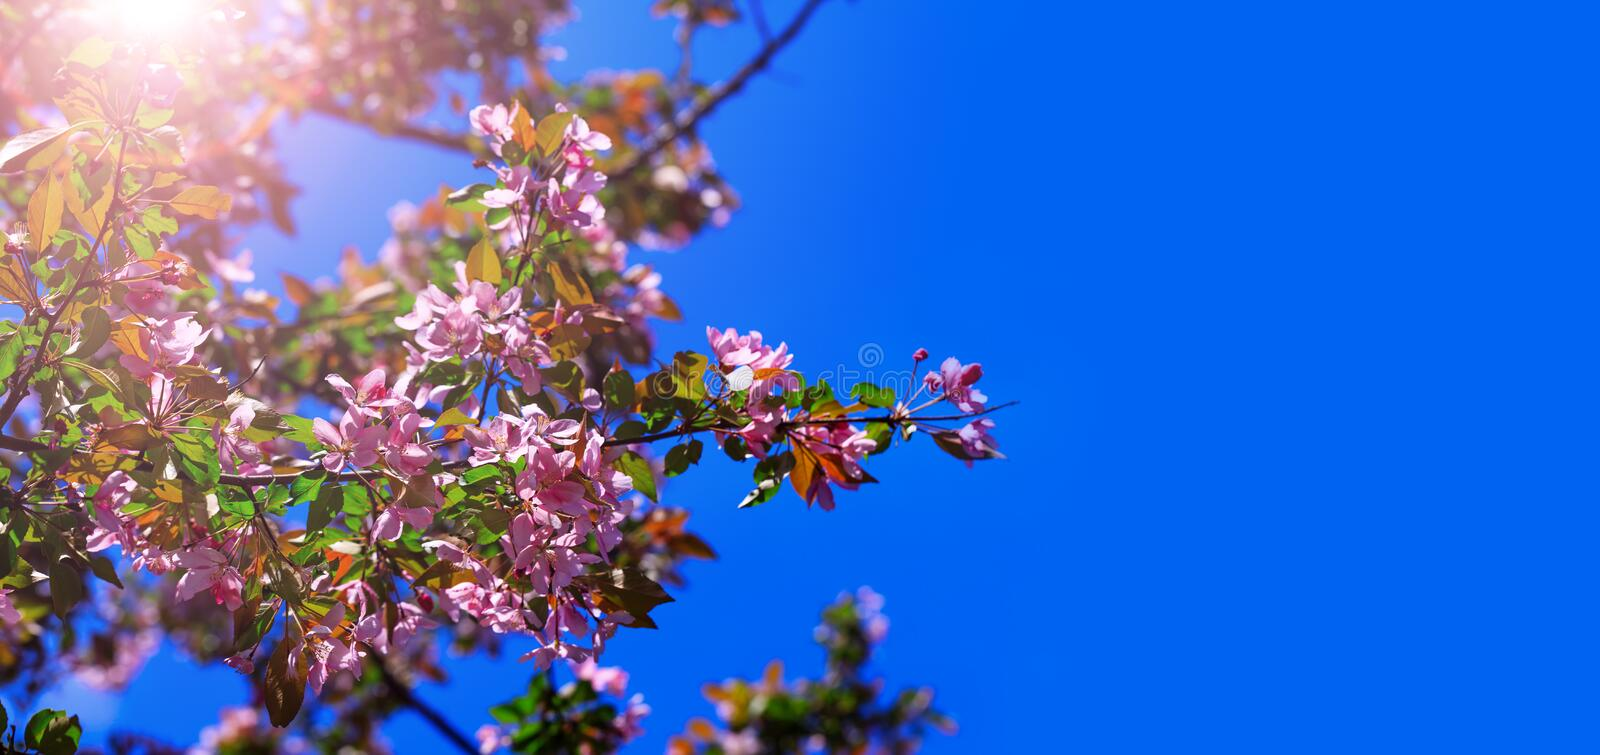 Spring tree blossom flowers with pink and red petals on background of blue sky. Blossom blooming on tree in springtime. Apple tree royalty free stock photography